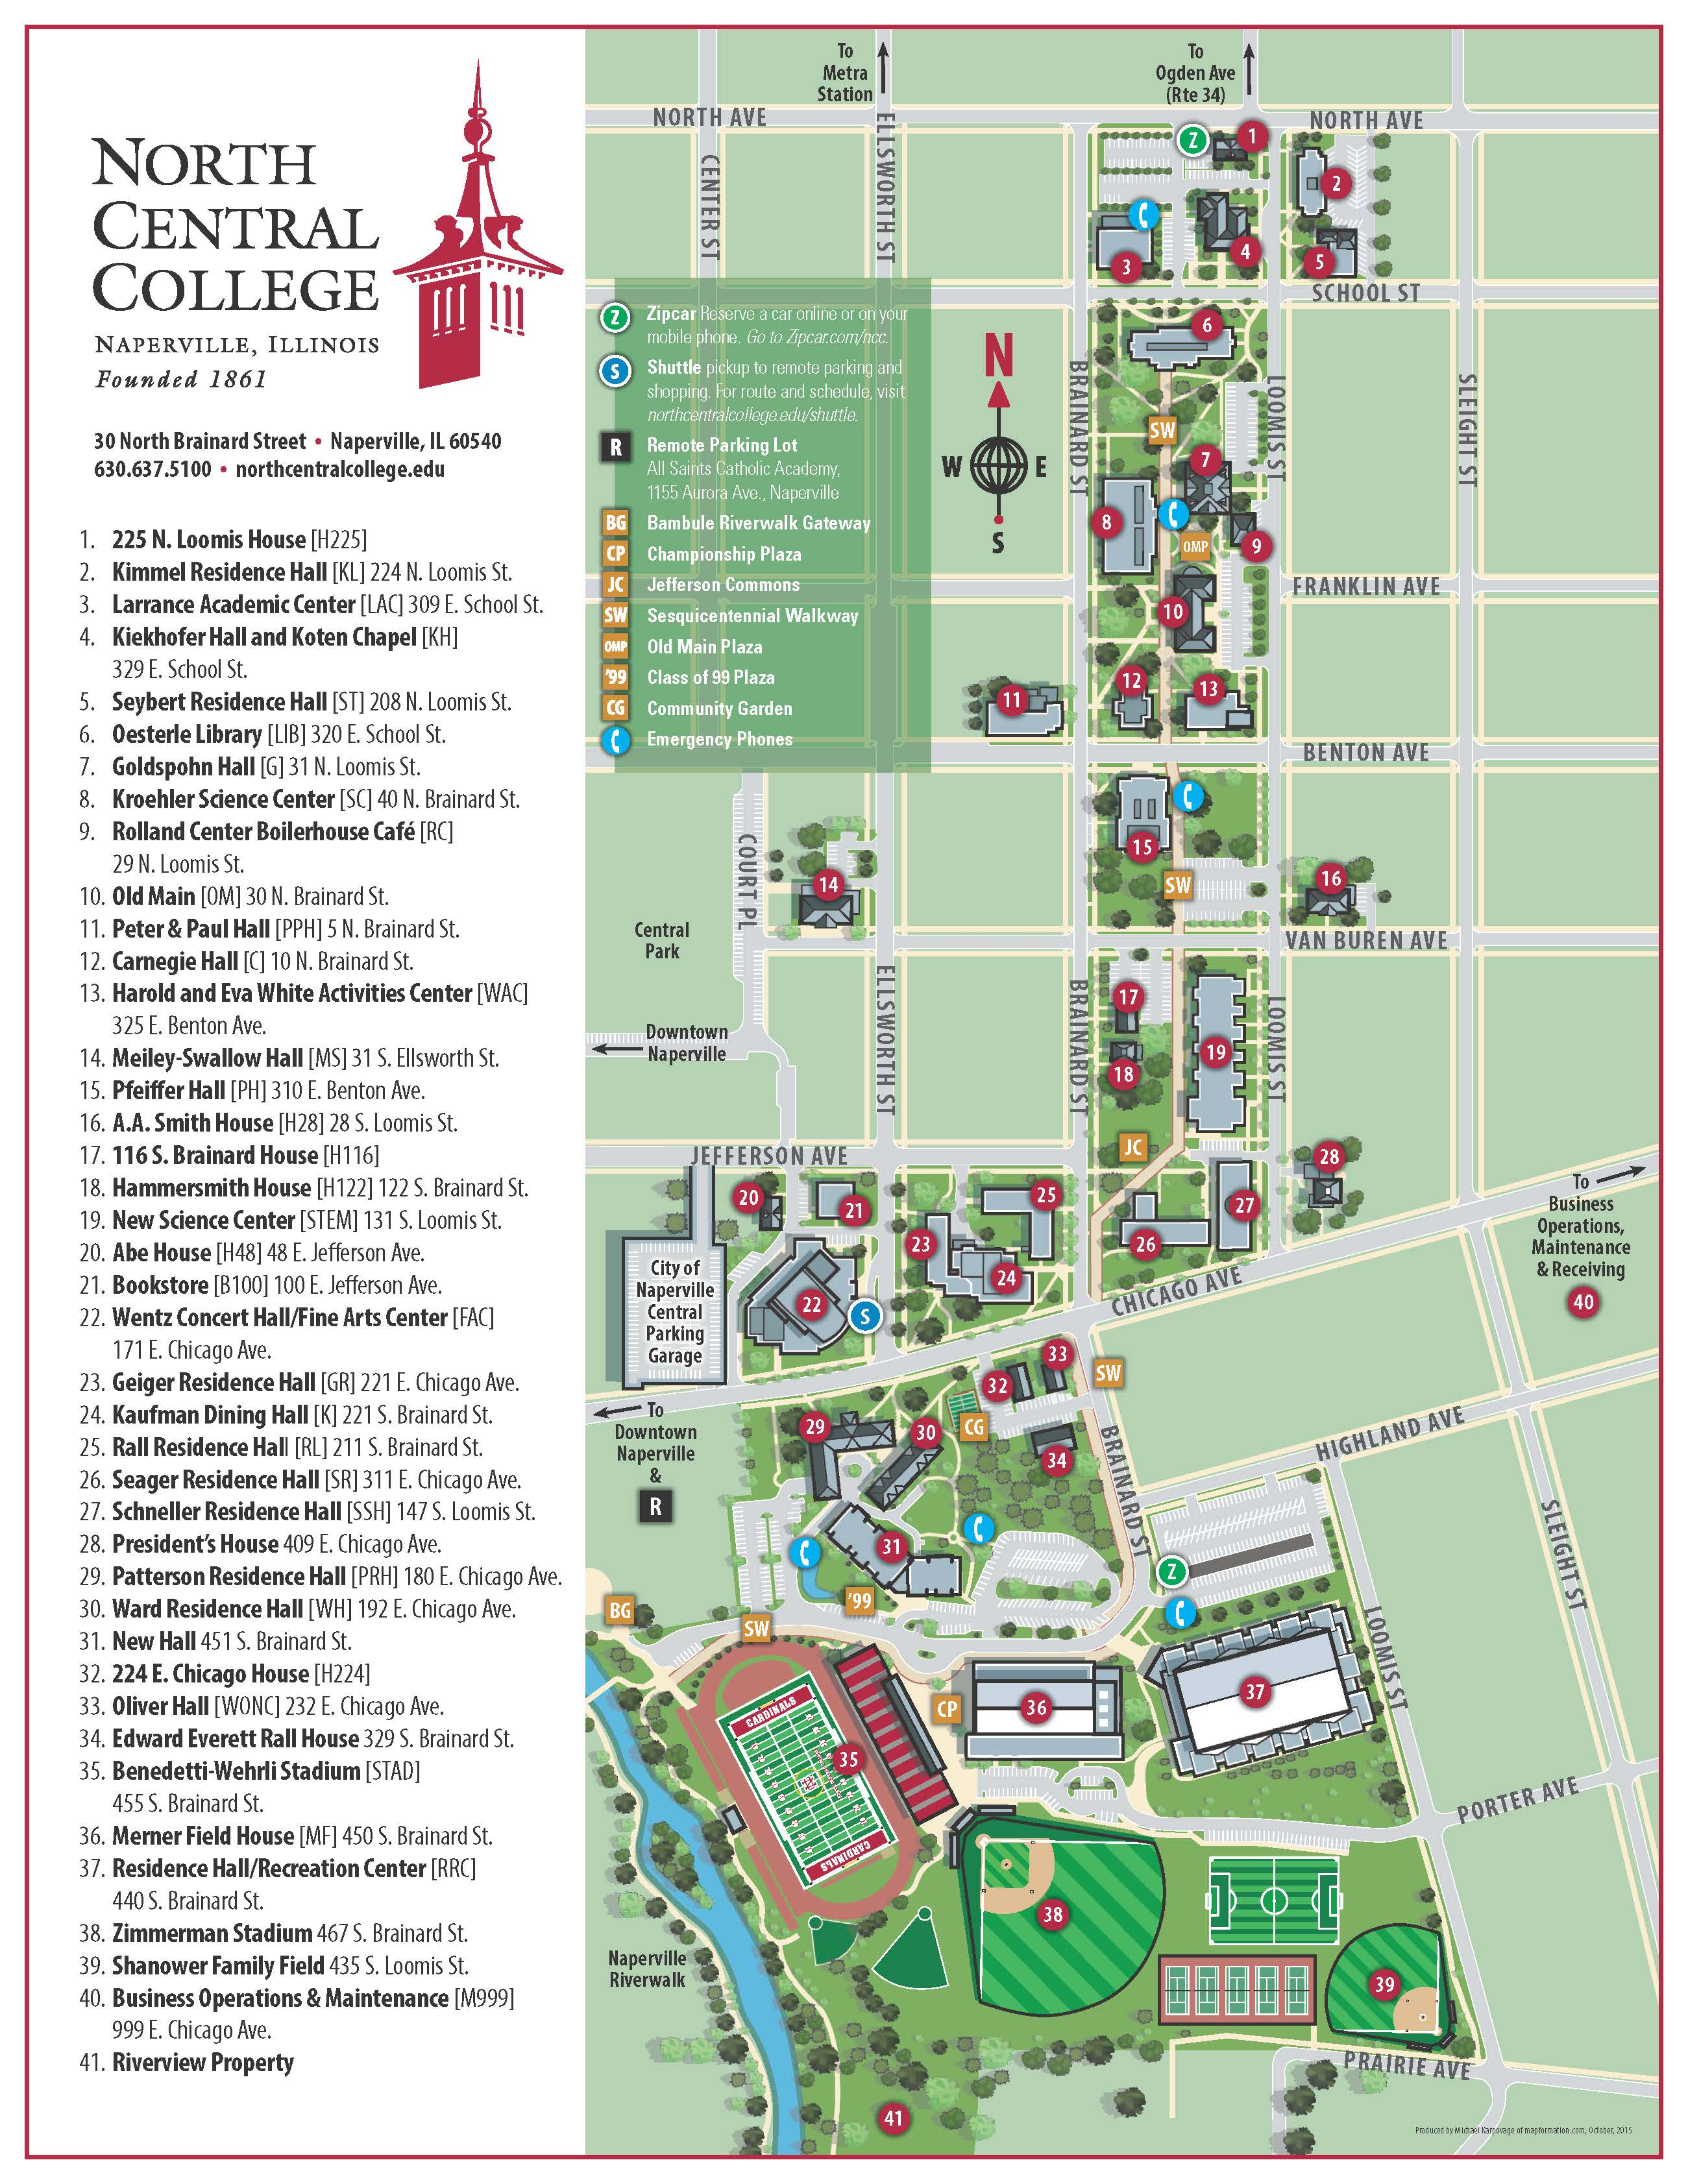 Missouri Western State University Campus Map.Football Clinics North Central College